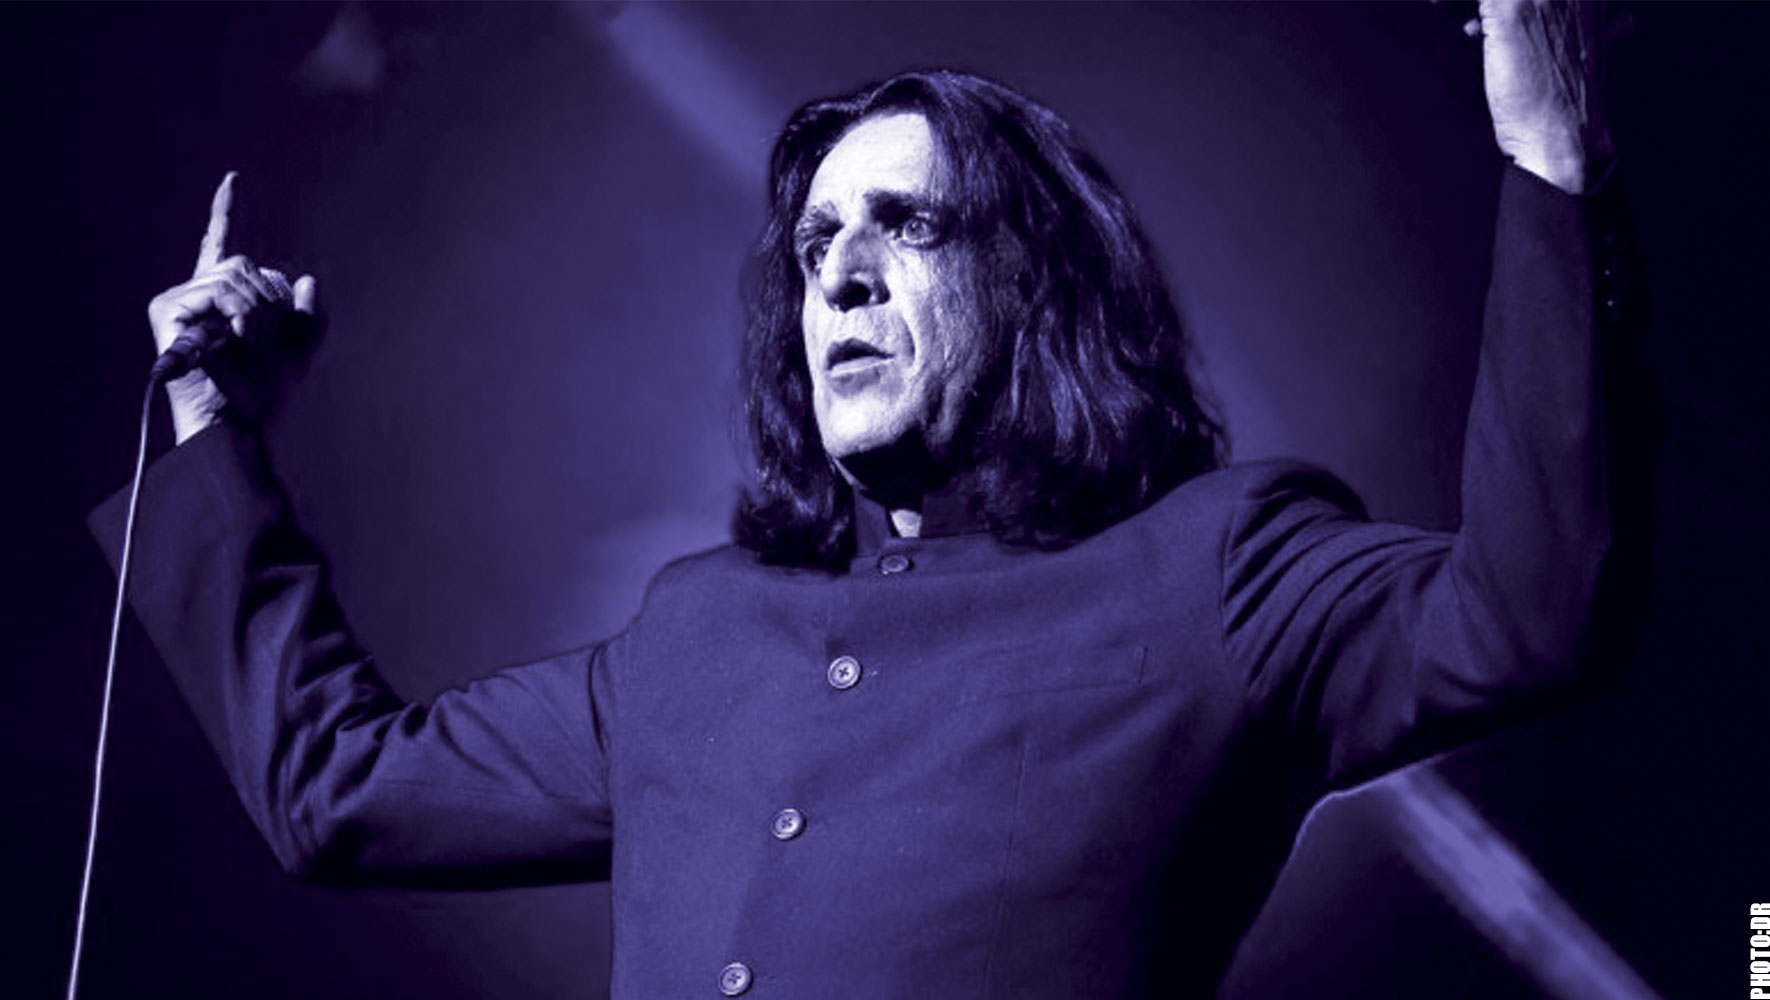 Jaz Coleman - Spoken Word, The Great Transformation